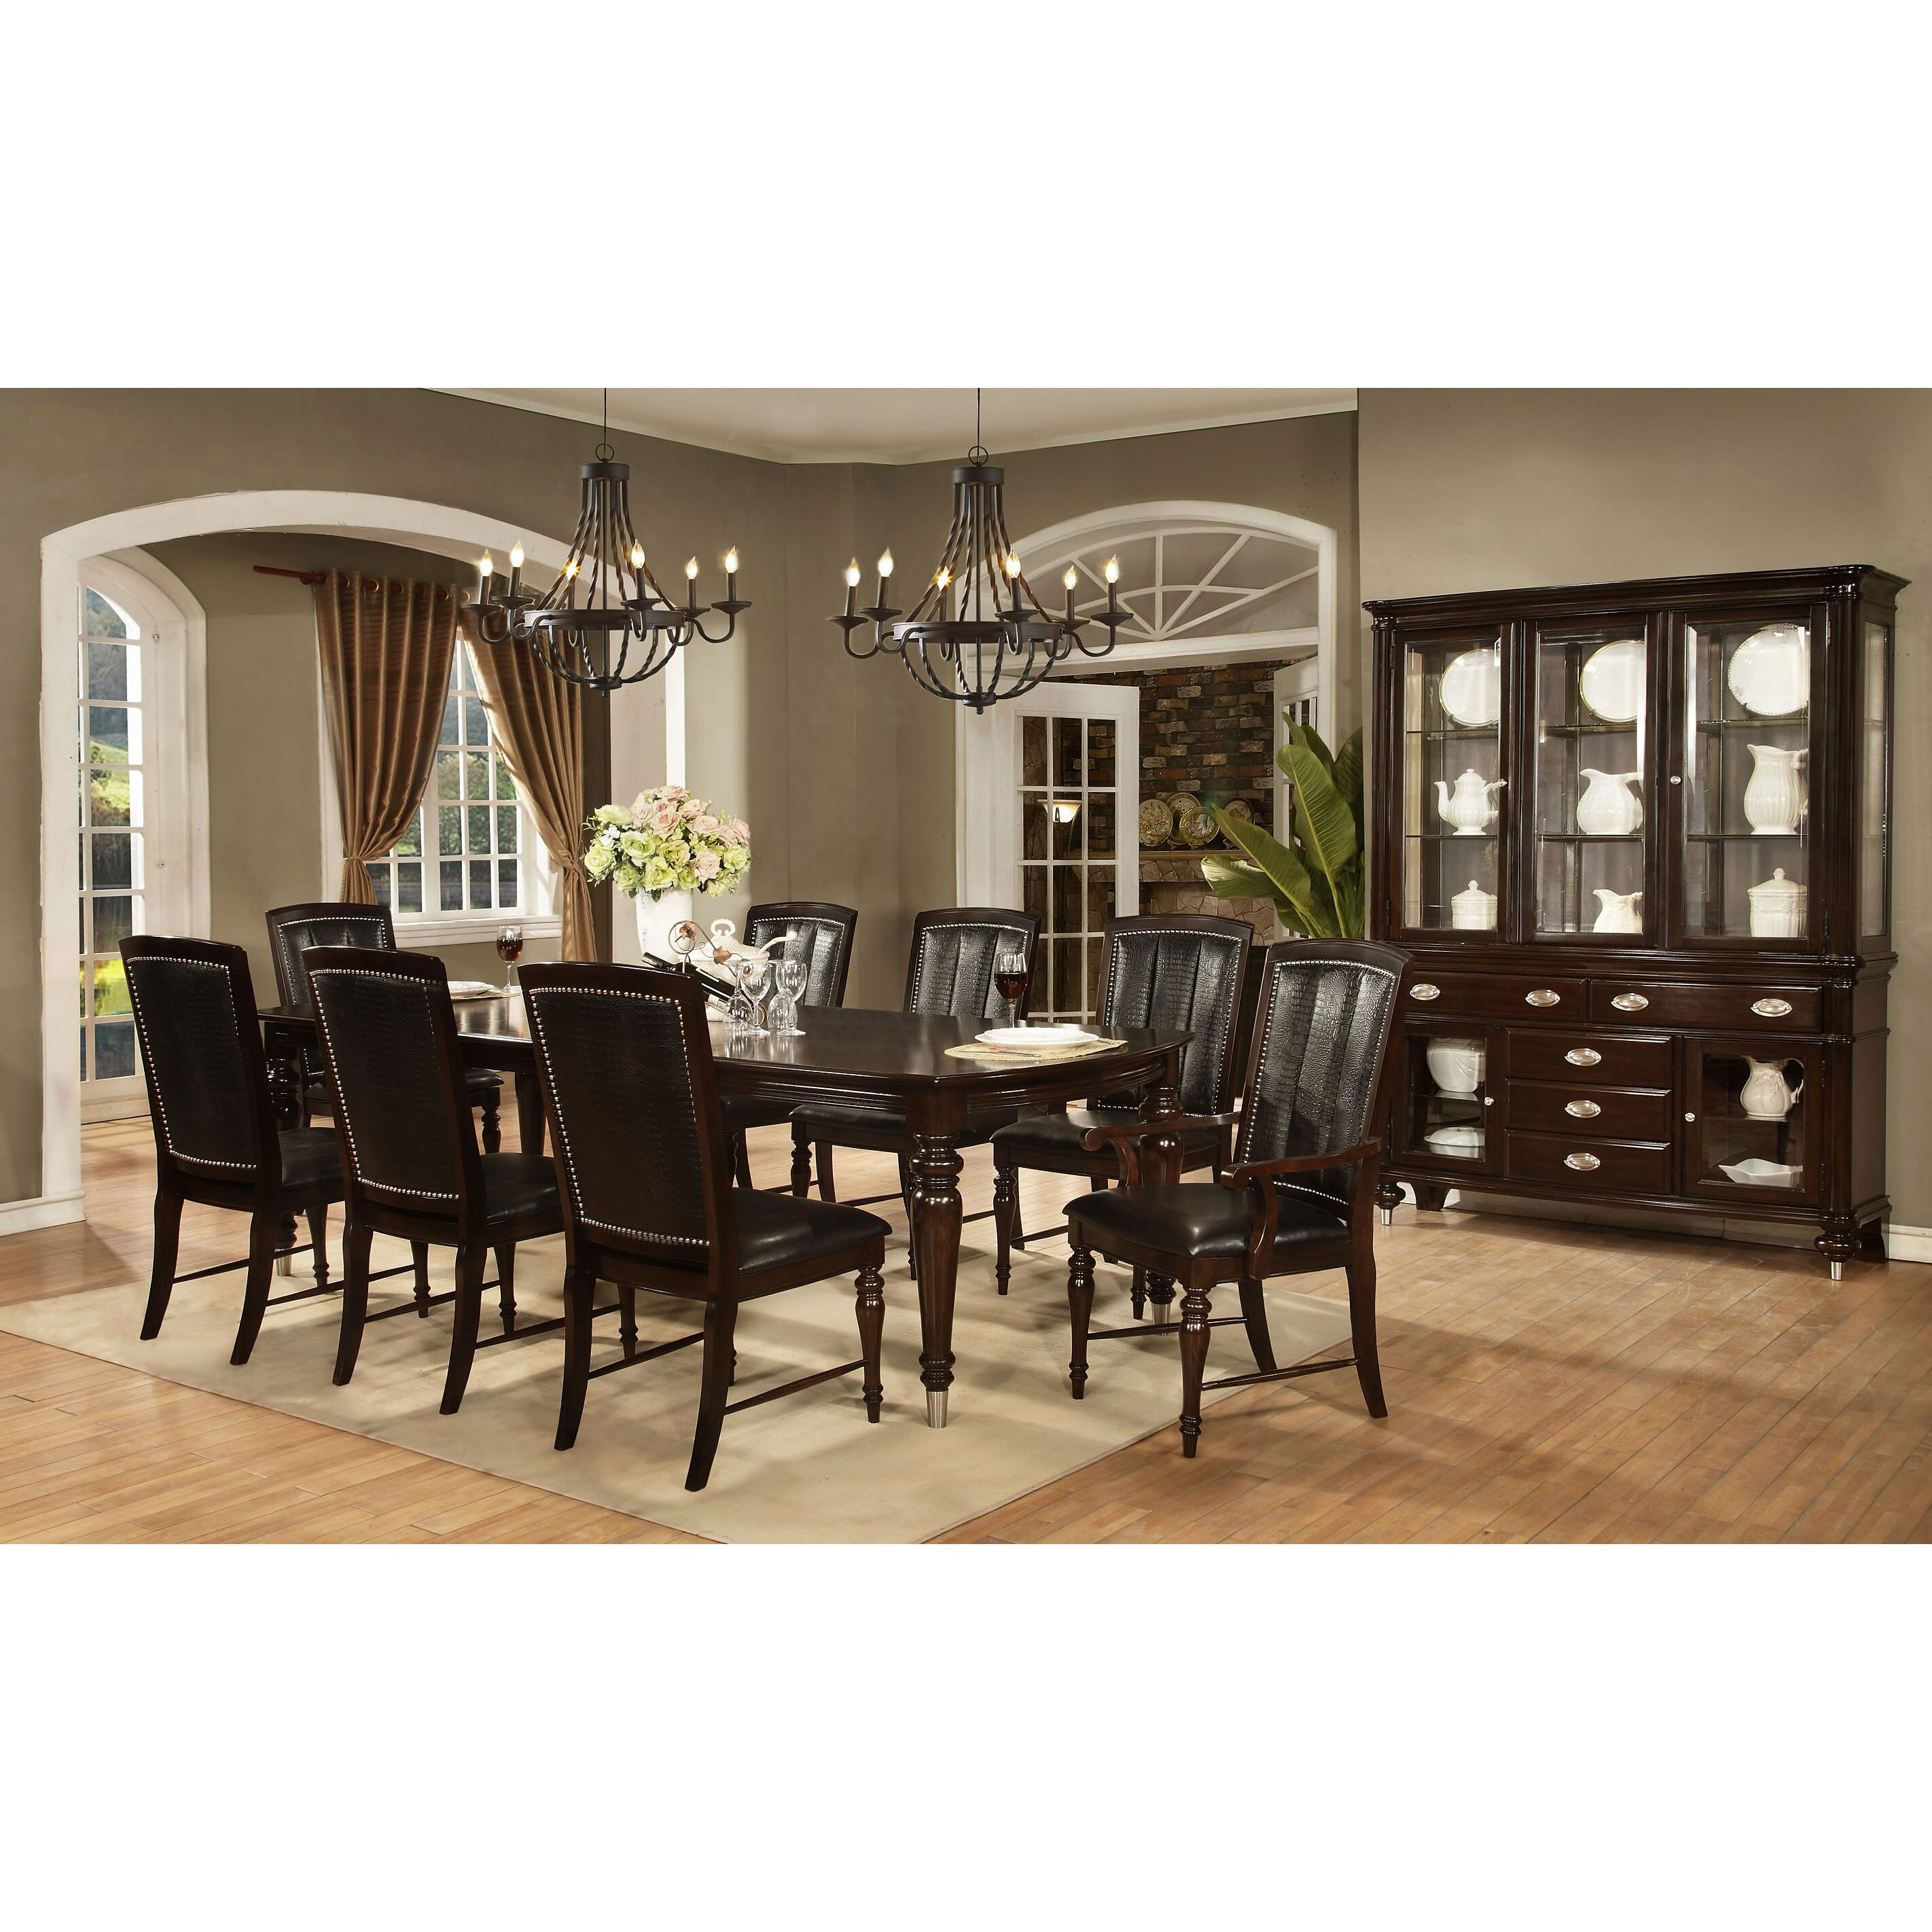 Avalon furniture dundee place 9 piece dining set reviews for Dining room furniture 9 piece